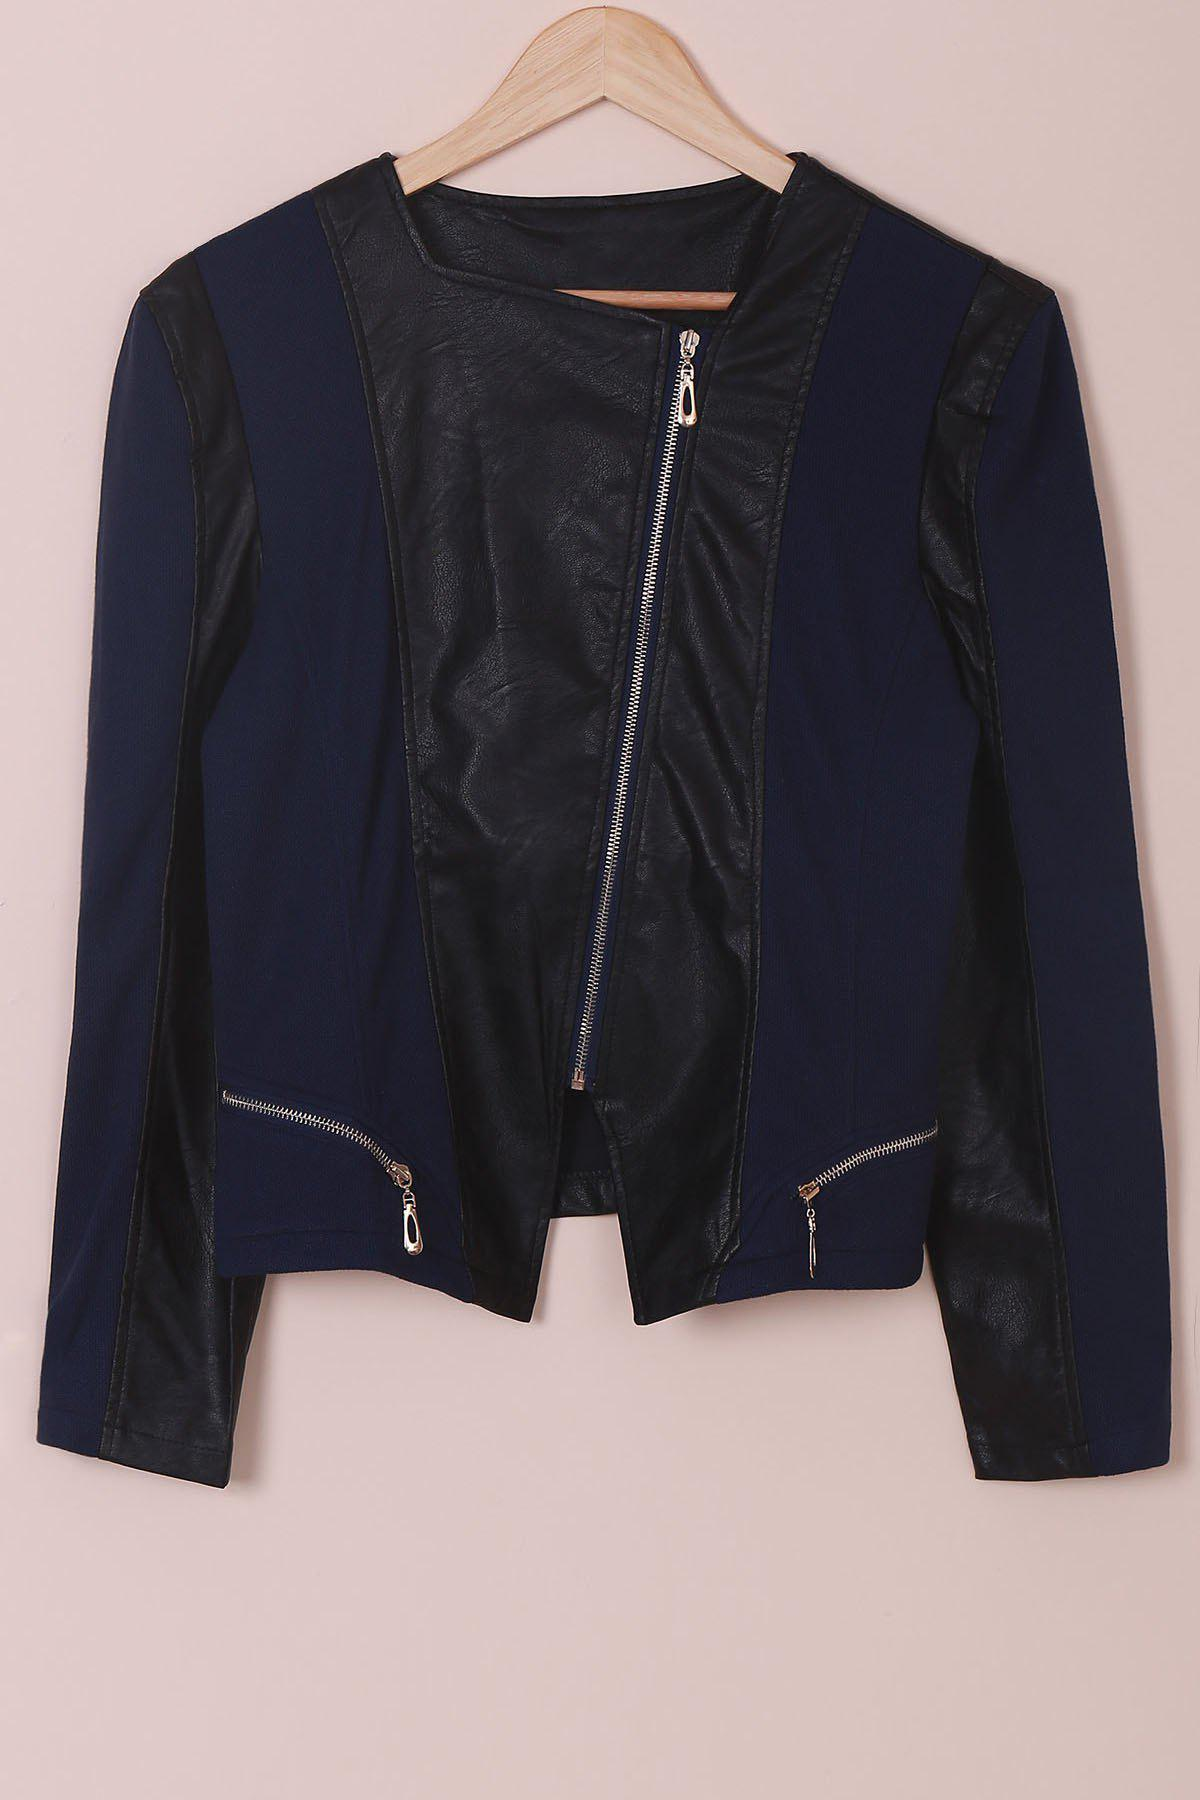 Women's Chic Faux Leather Zipper Long Sleeve Jacket - BLUE/BLACK XL